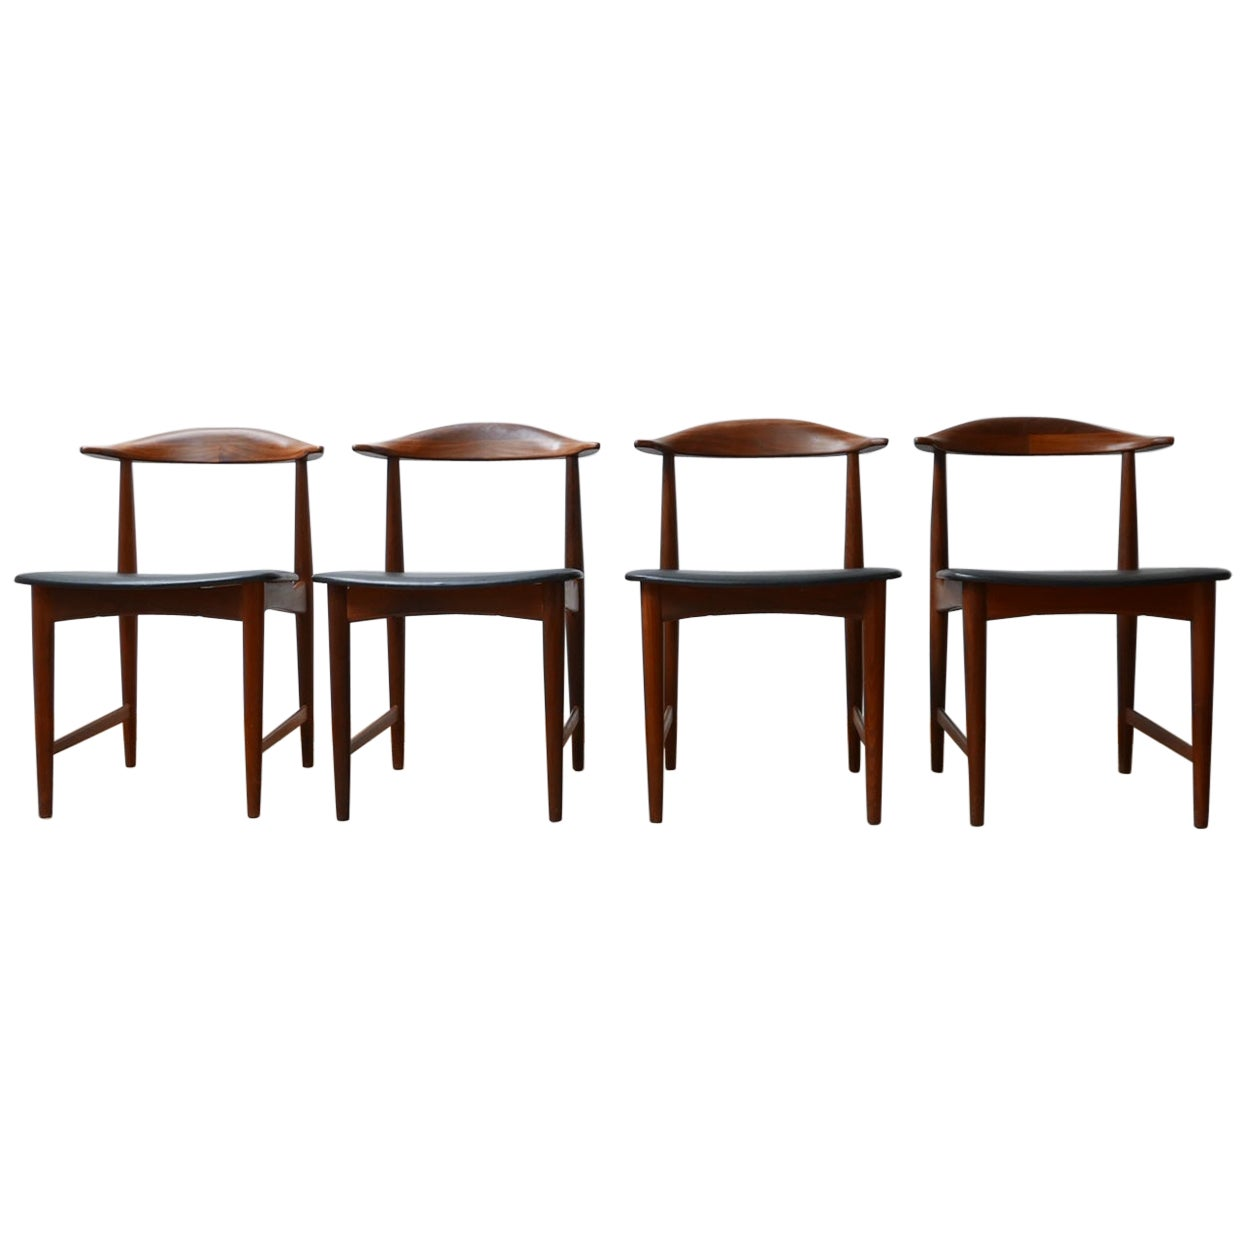 Danish 'Cow Horn' Midcentury Teak Dining Chairs '4'